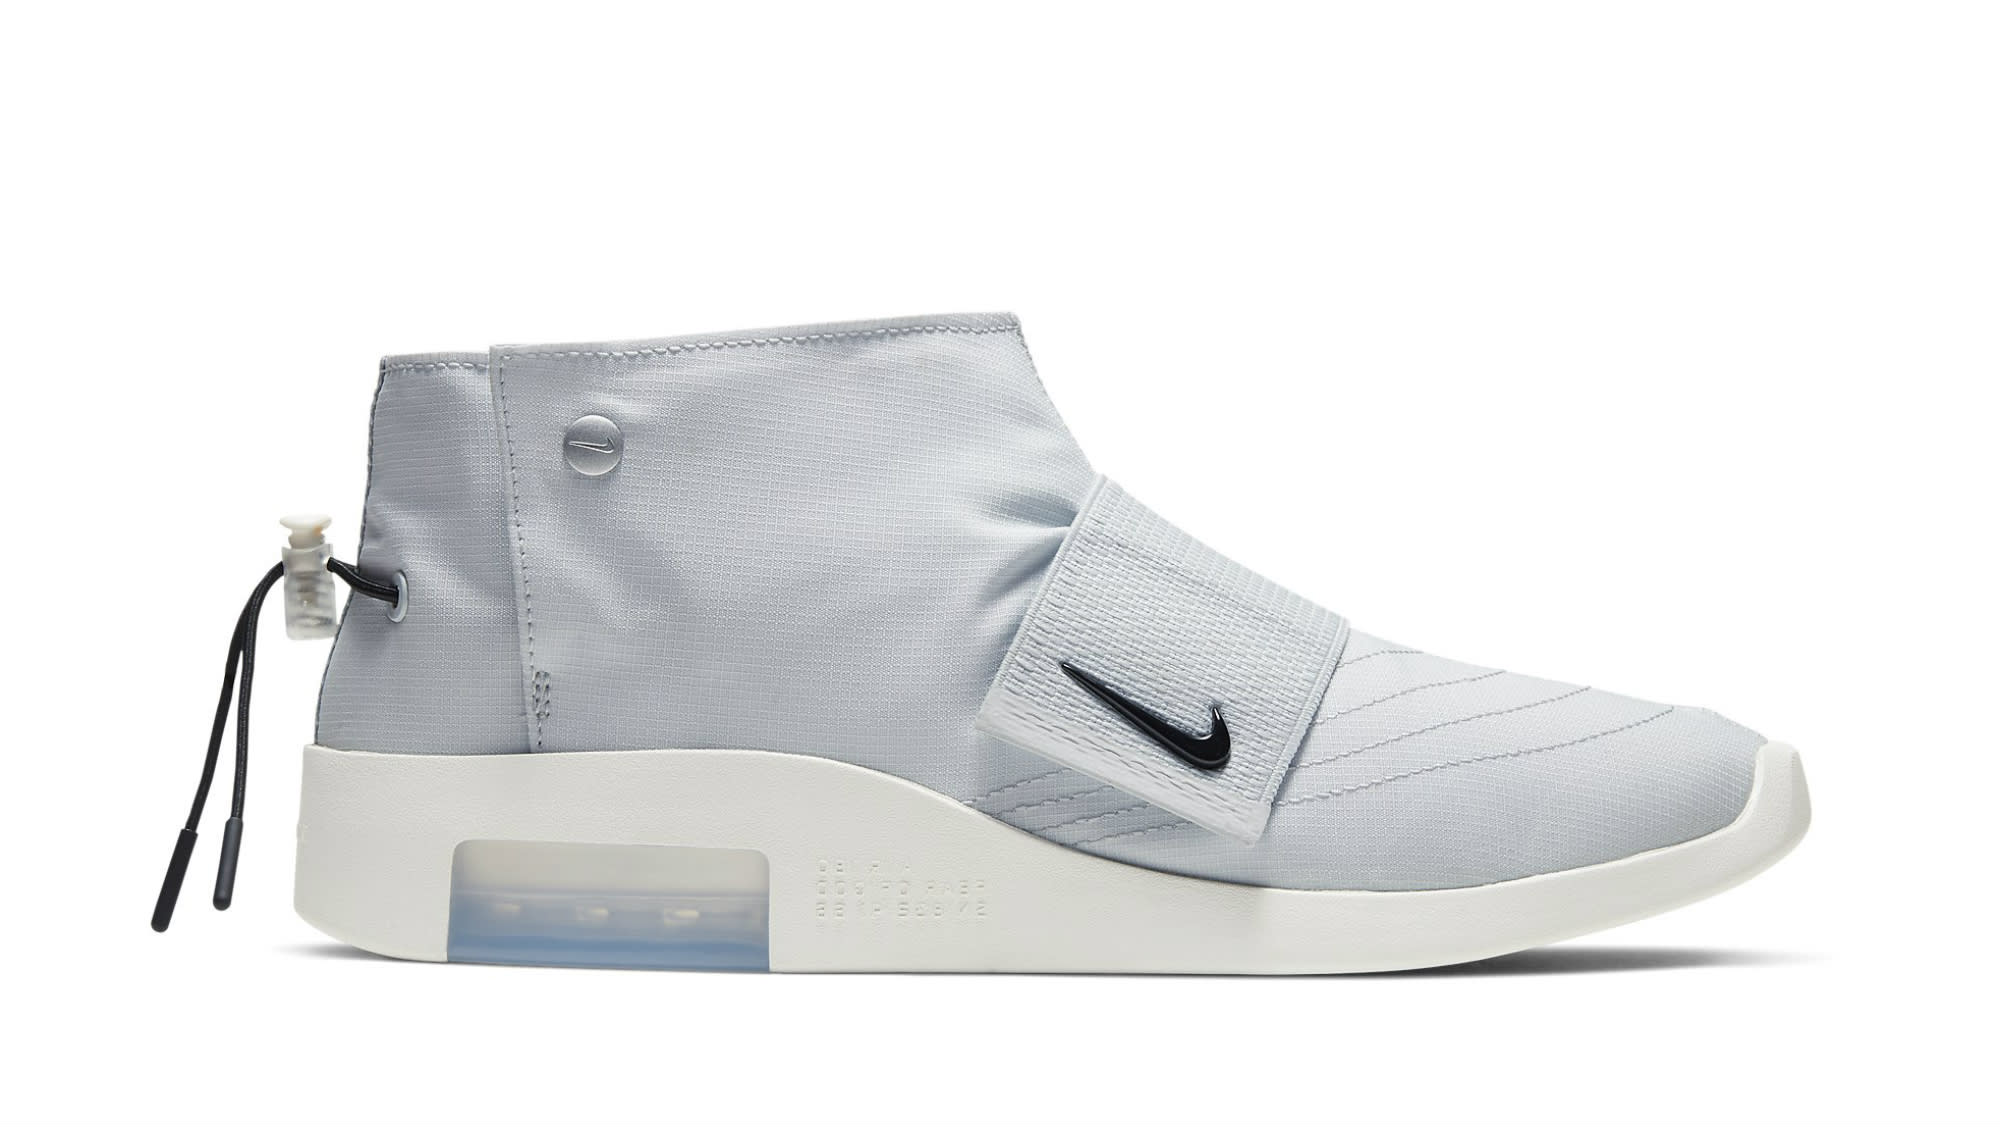 3f11856b6 nike-air-fear-of-god-moccasin-pure-platinum-